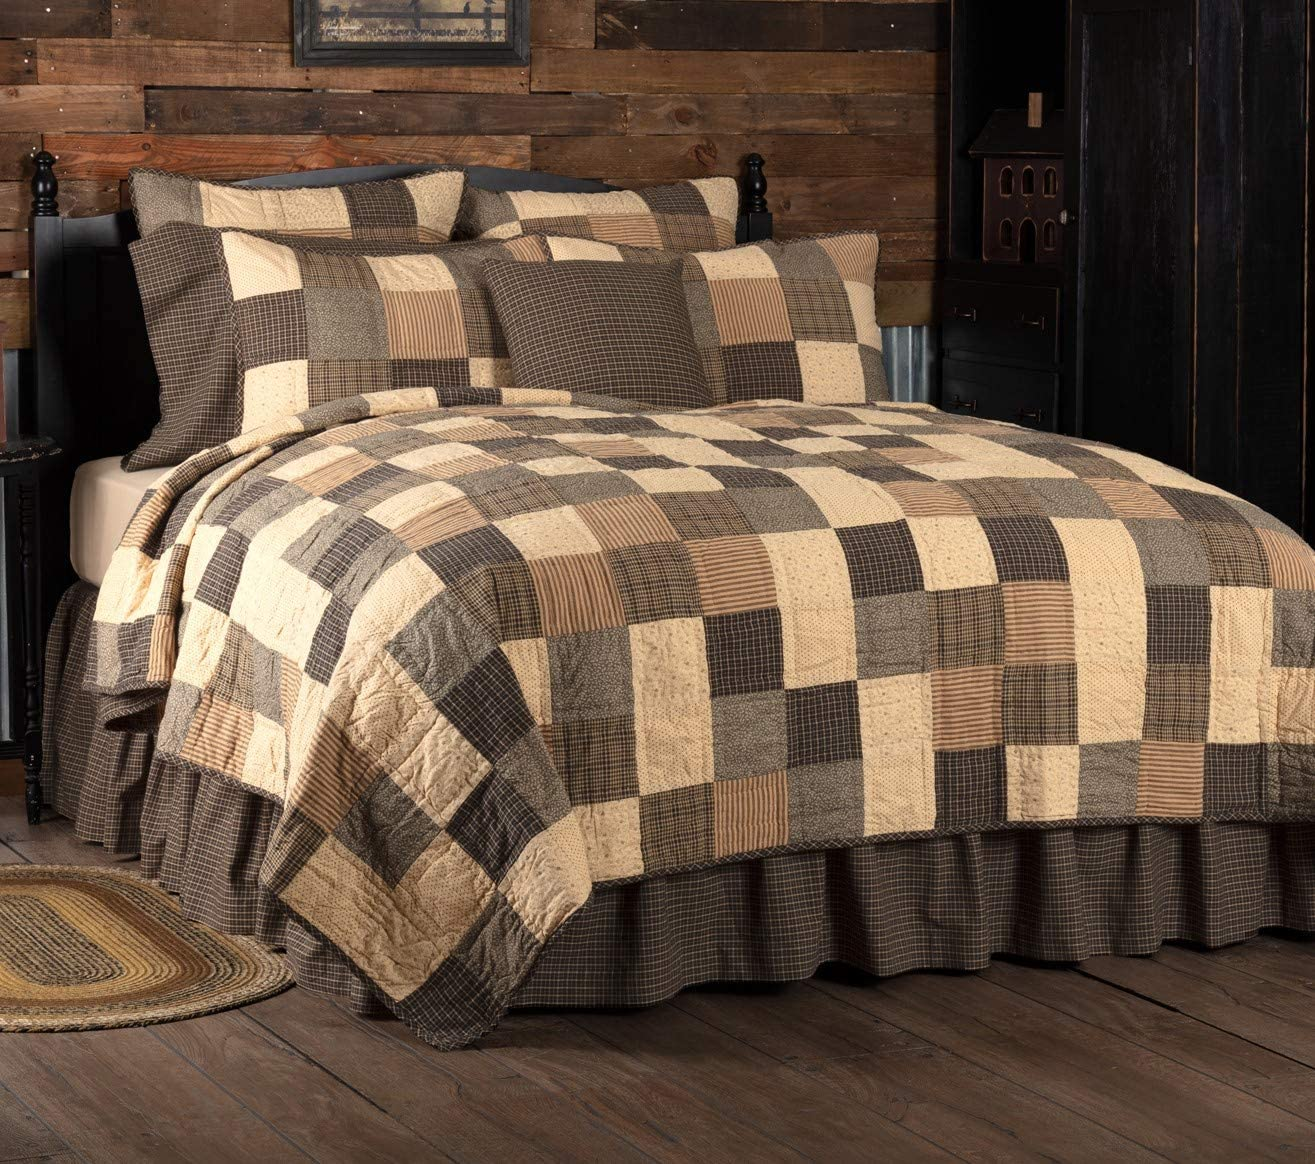 VHC Brands Primitive Bedding Prim Grove Cotton Pre-Washed California King Quilt, Country Black